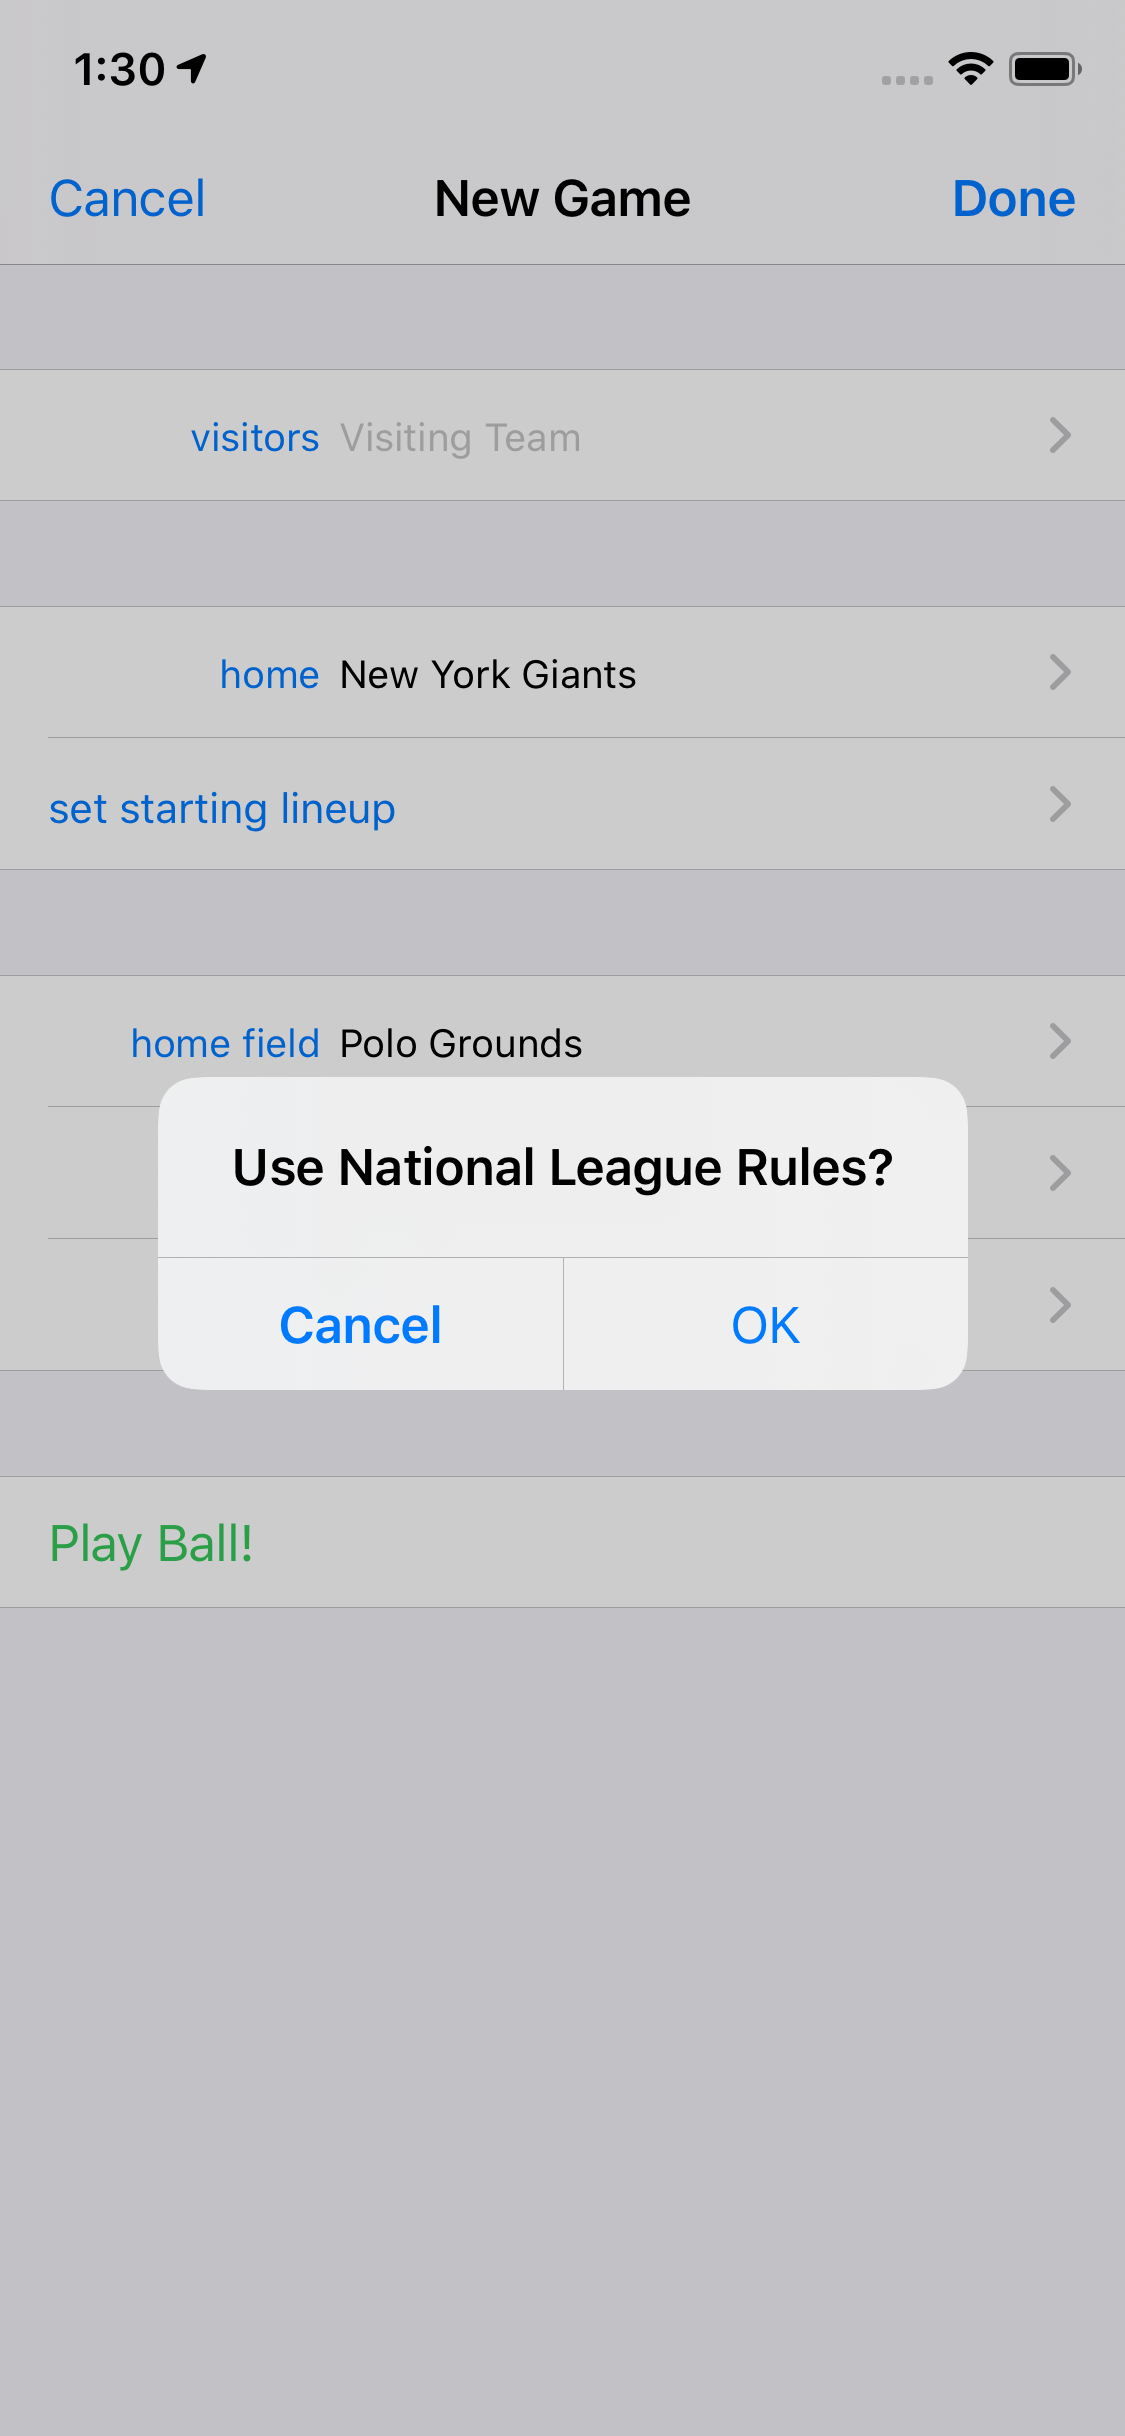 Use National League Rules?